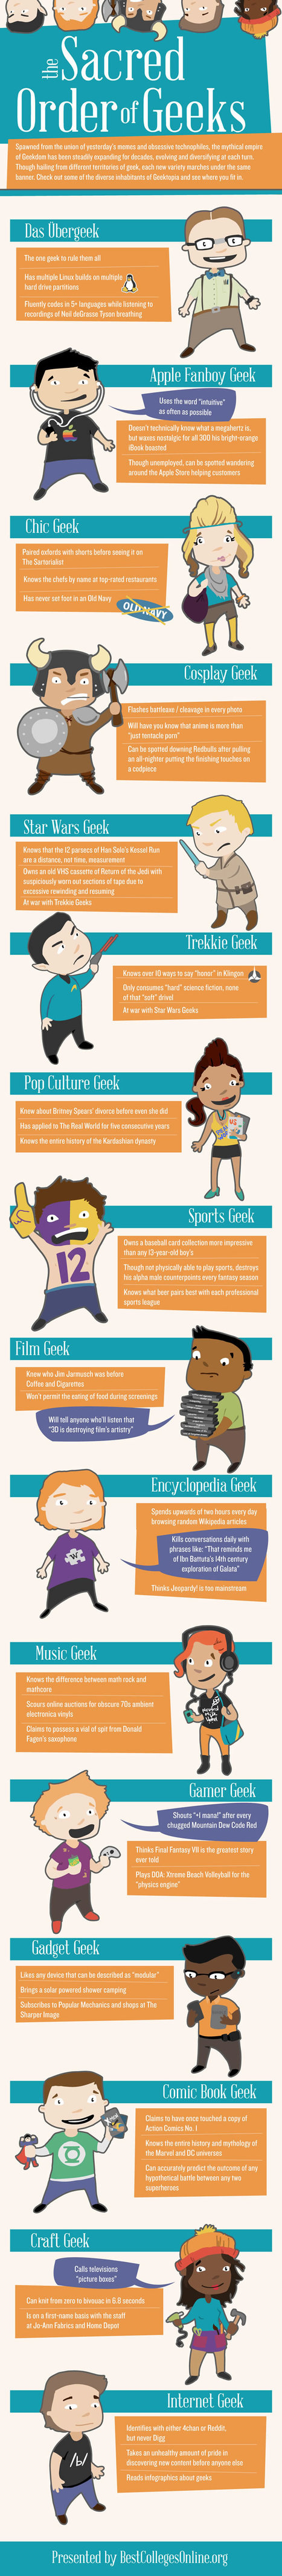 la-classification-des-geeks-infographie   And Geek for All   Scoop.it